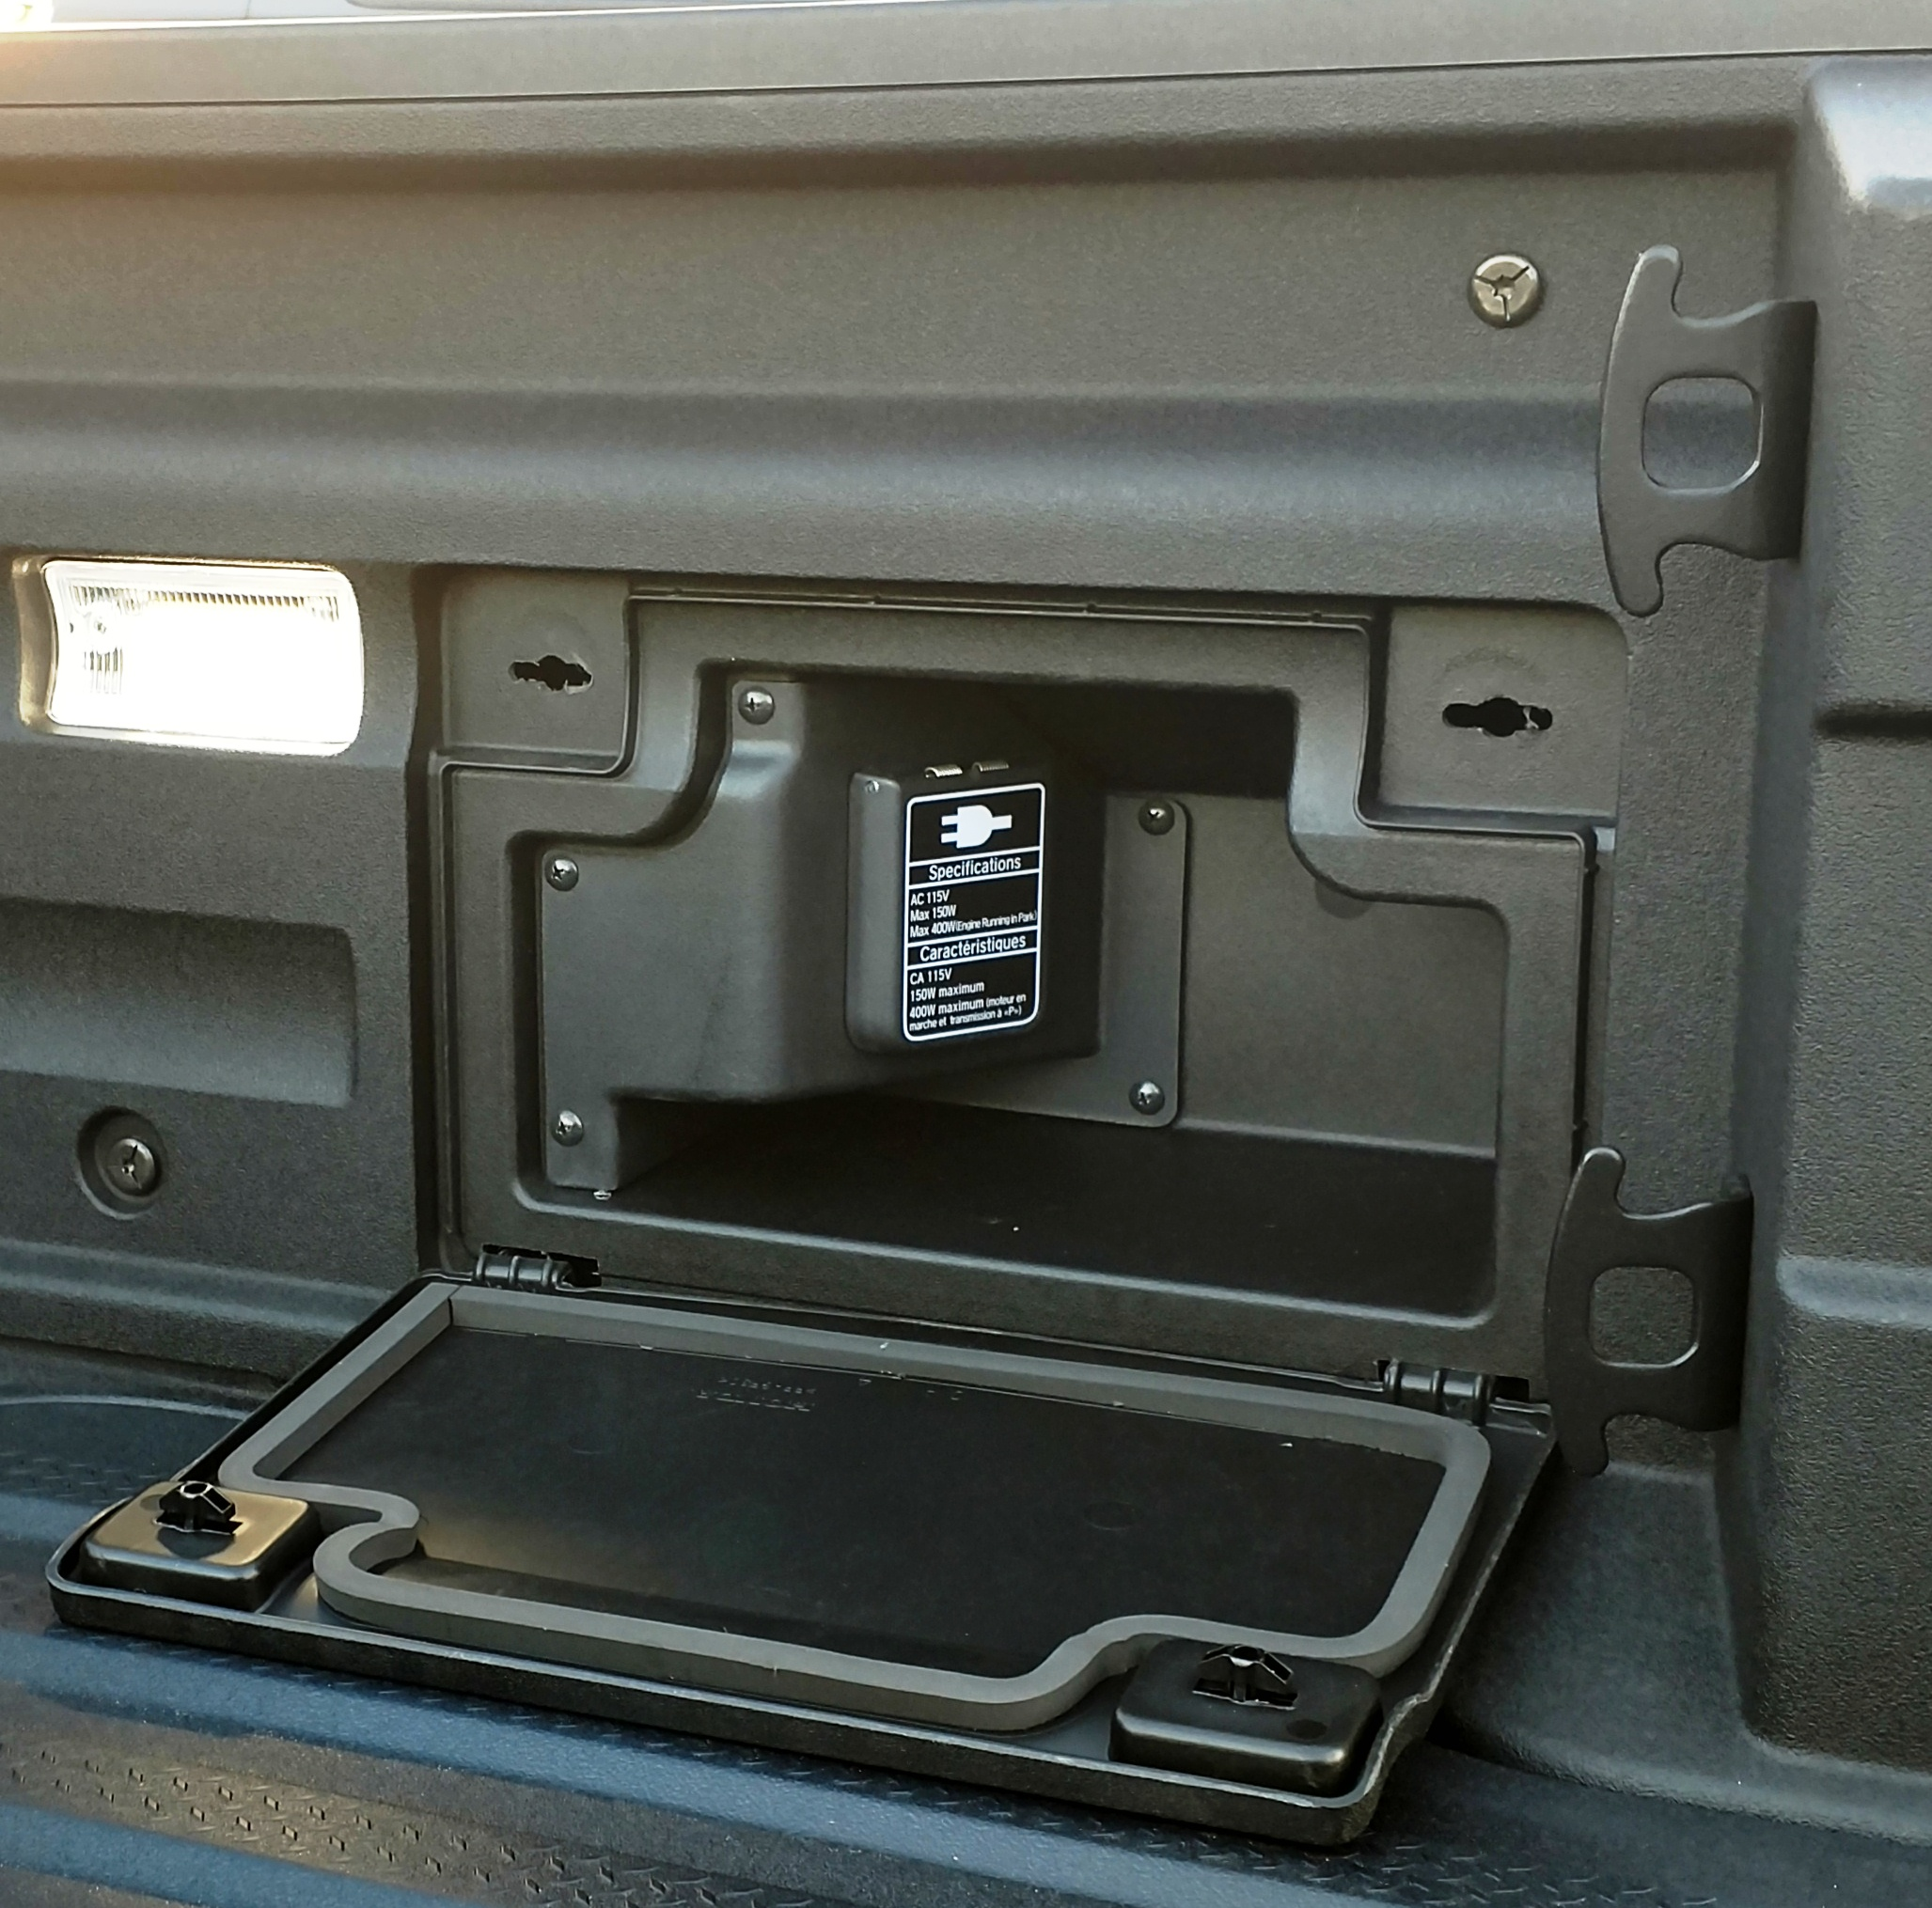 File:2018 Honda Ridgeline RTL-E-In-bed side storage ...